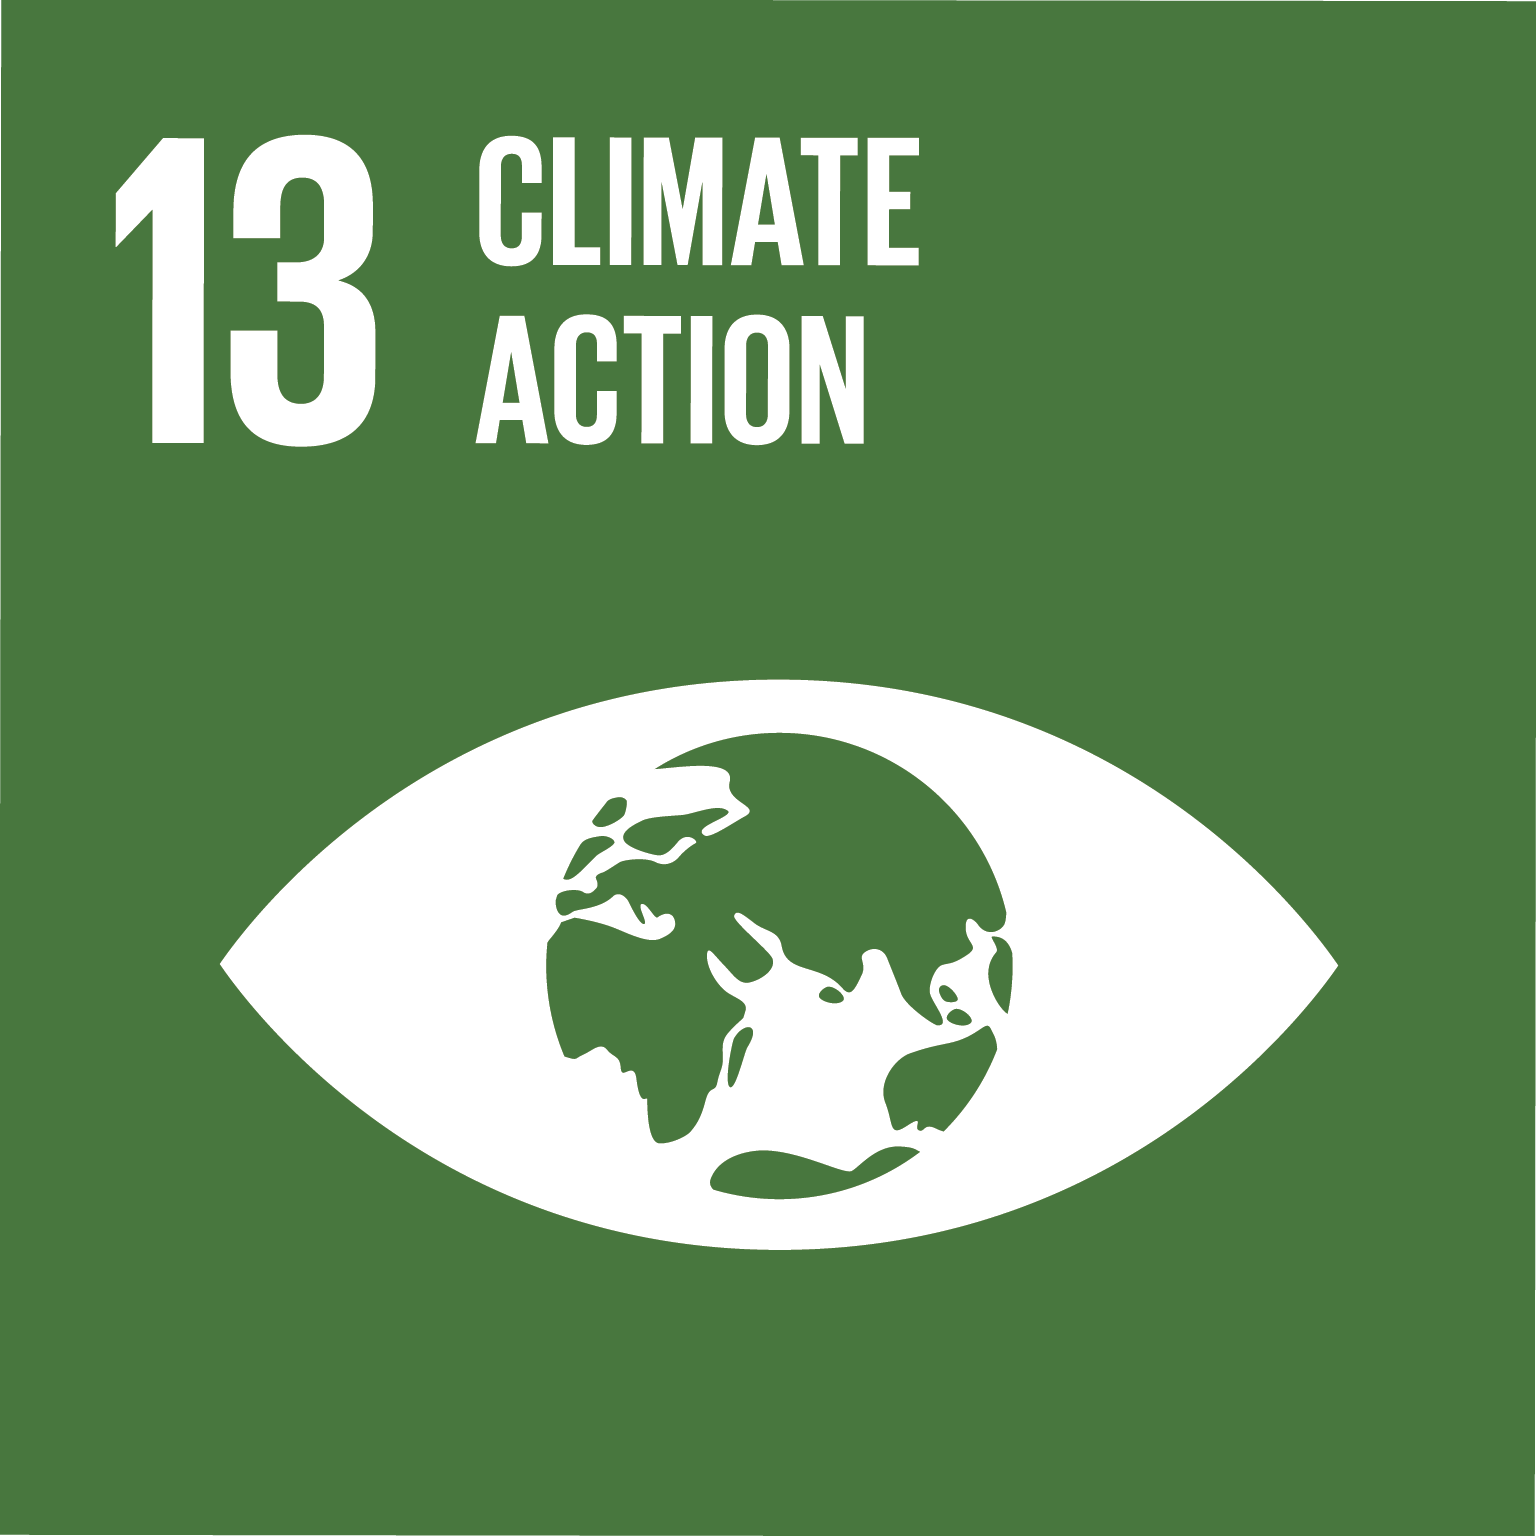 An image of UN Sustainable Development Goal 13